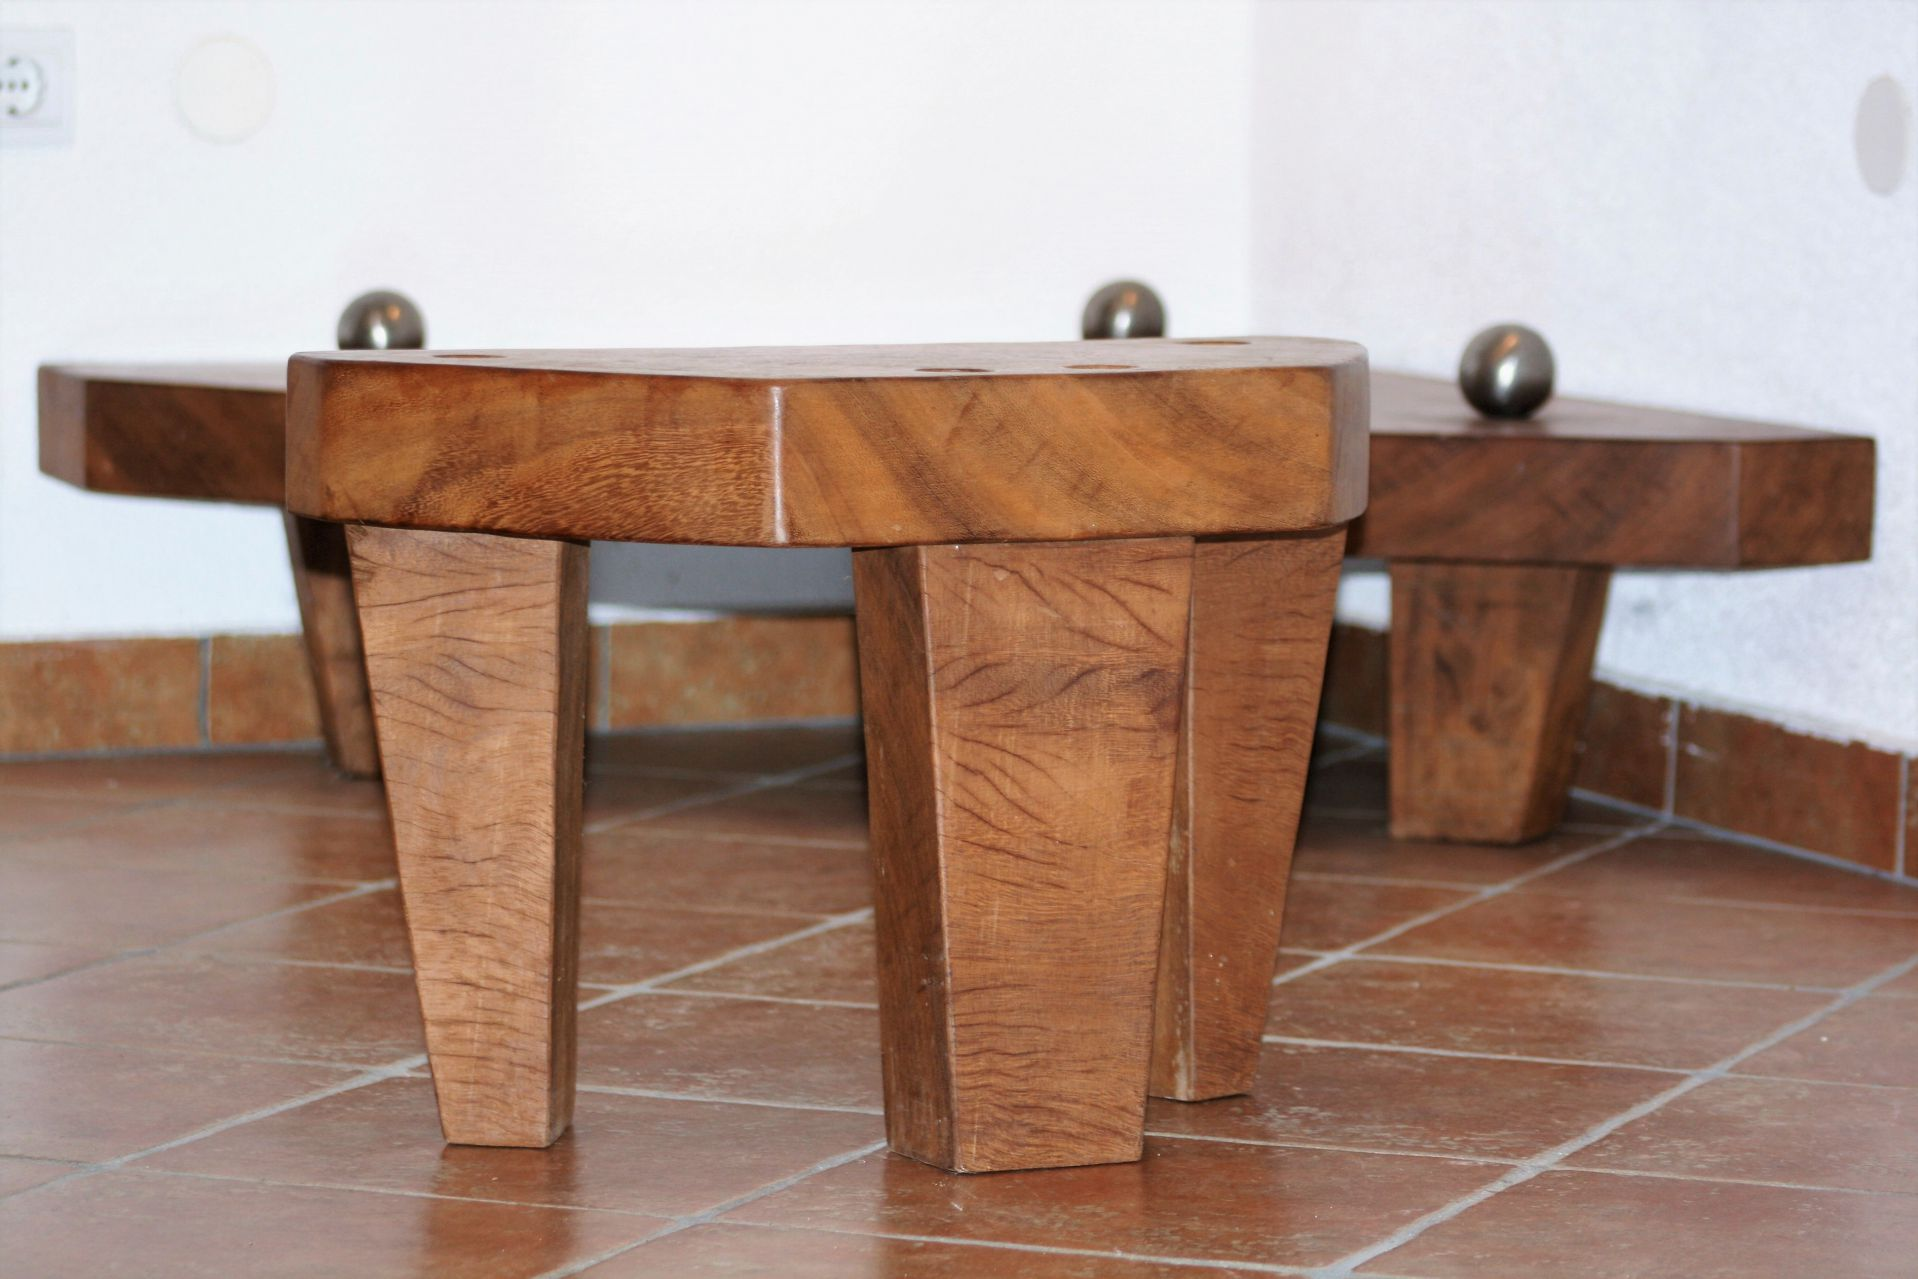 wood interior design art iroko wood african teak wood stool coffee table chair handmade unique artist design